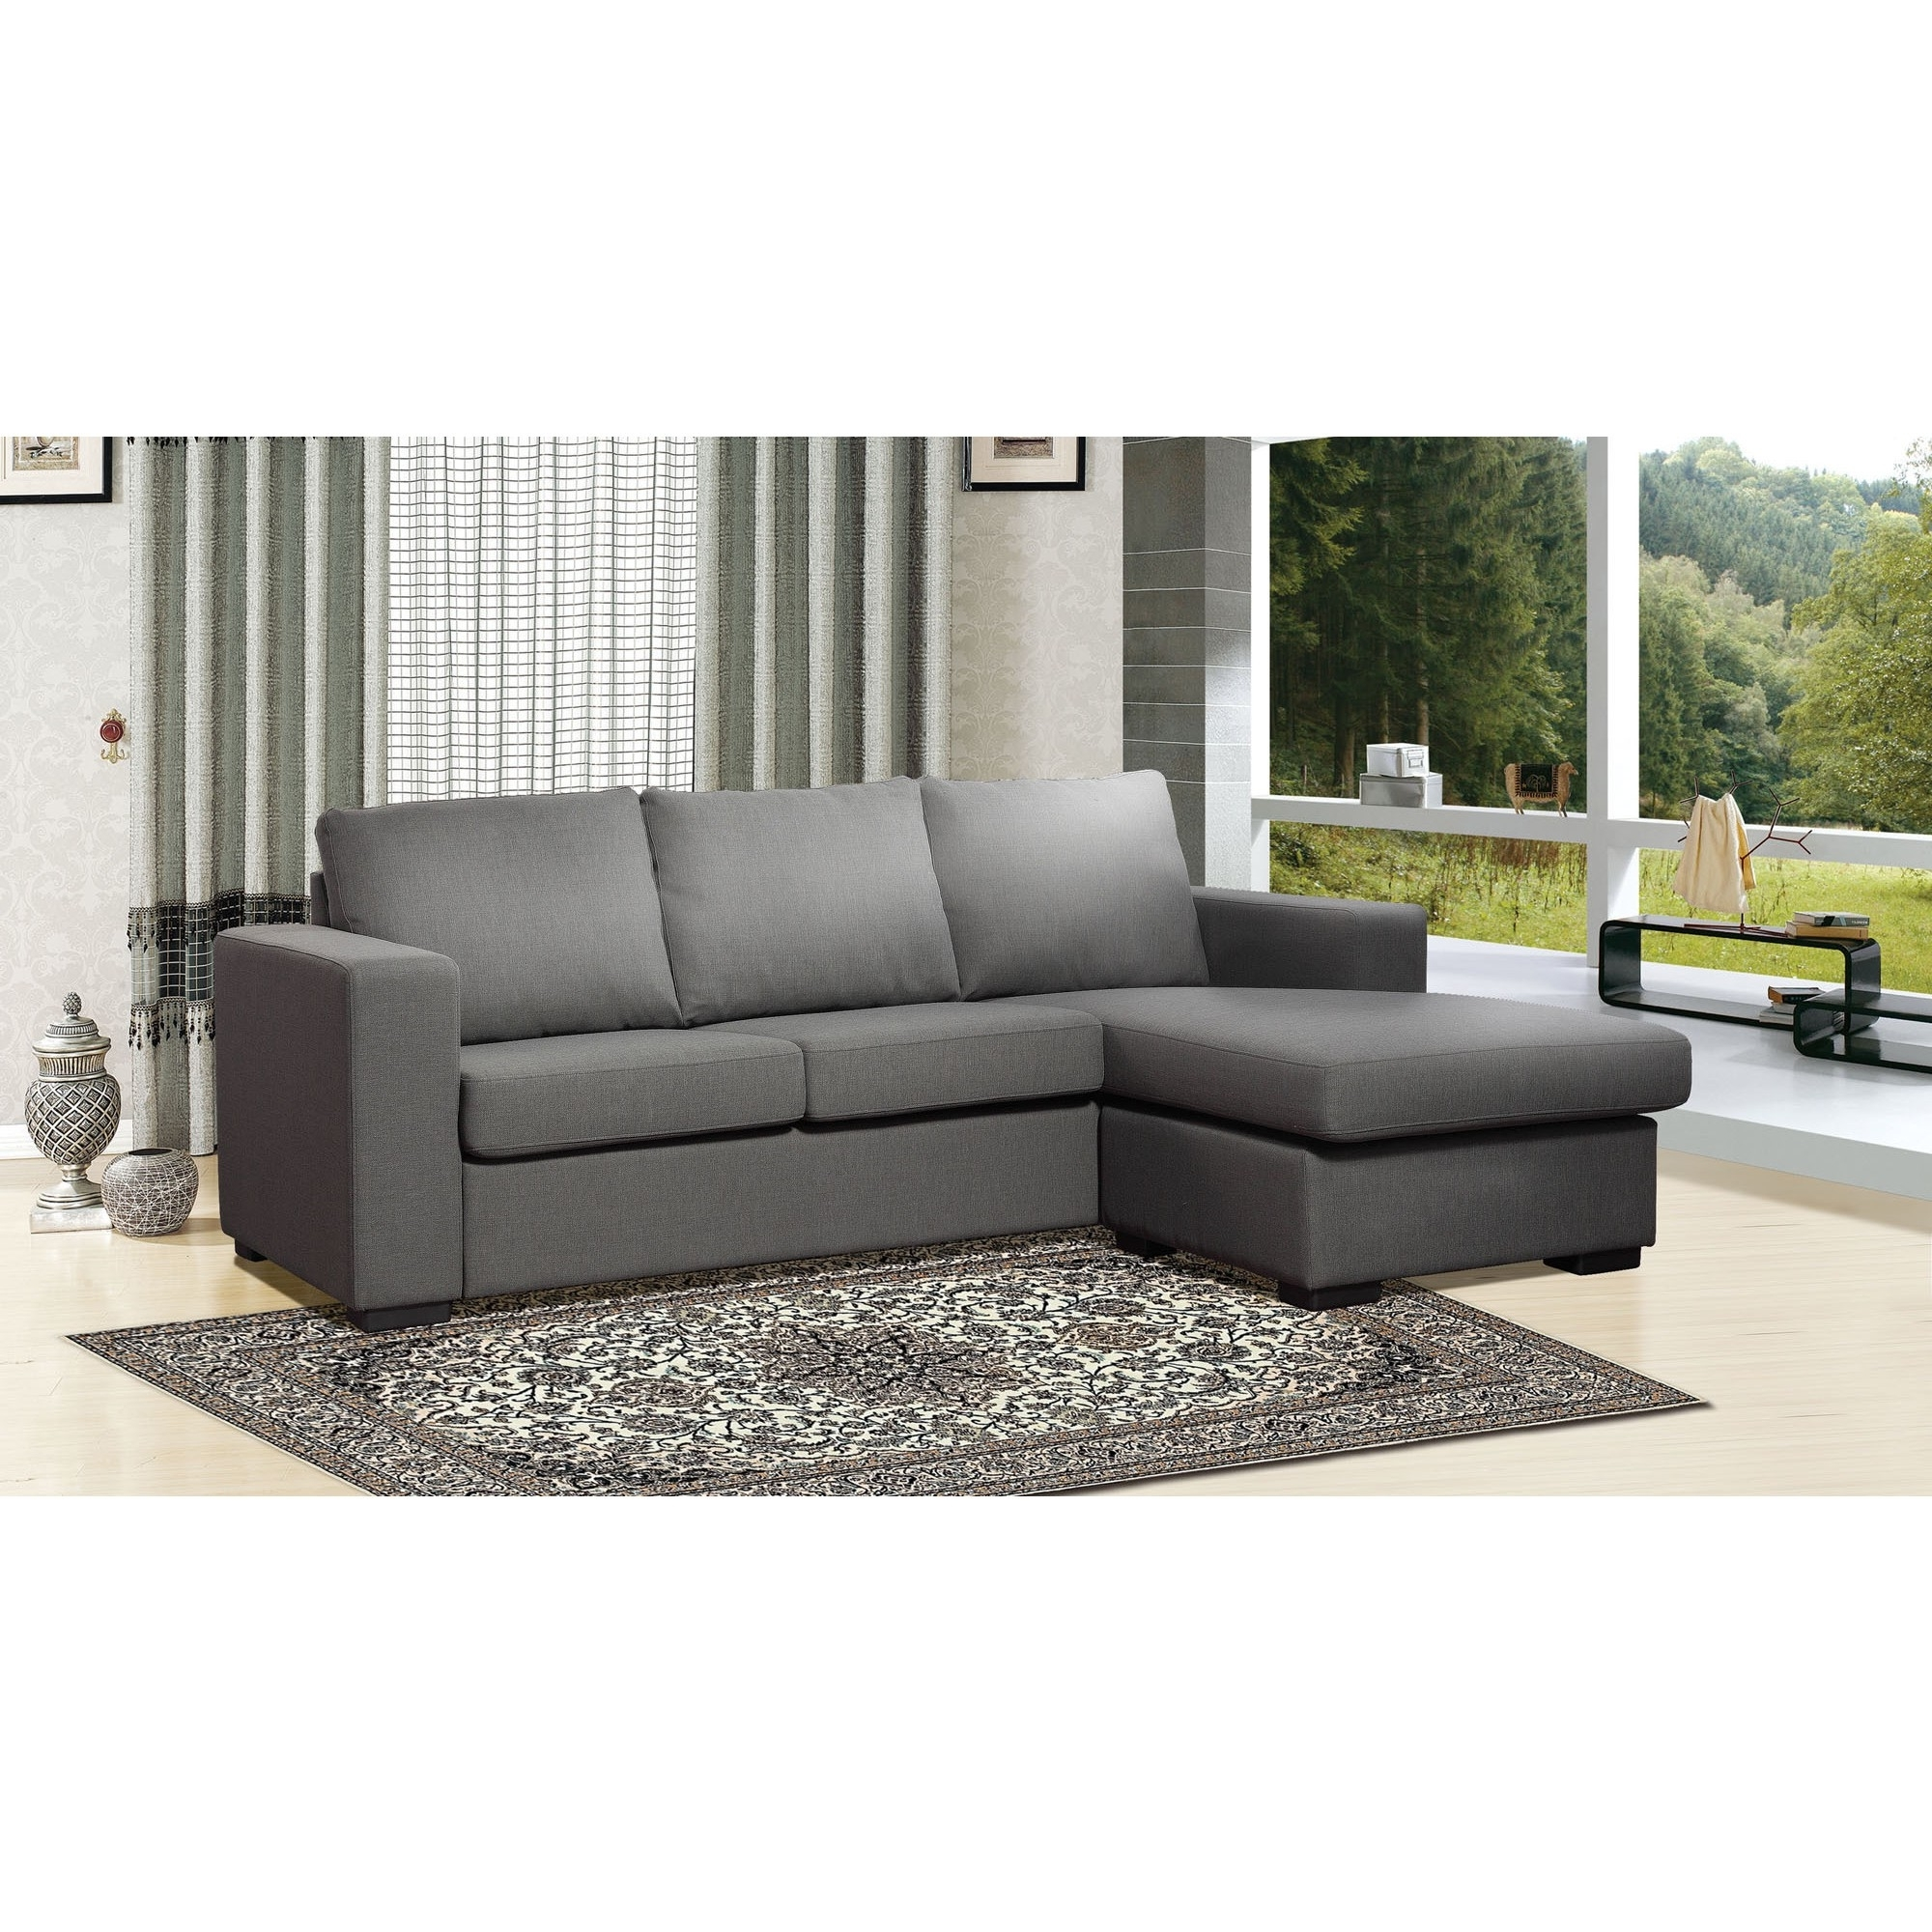 Popular Small Couches With Chaise Lounge Throughout Furniture Small Sectional Couch Small Couch L Type Sofa Couch Set (View 7 of 15)